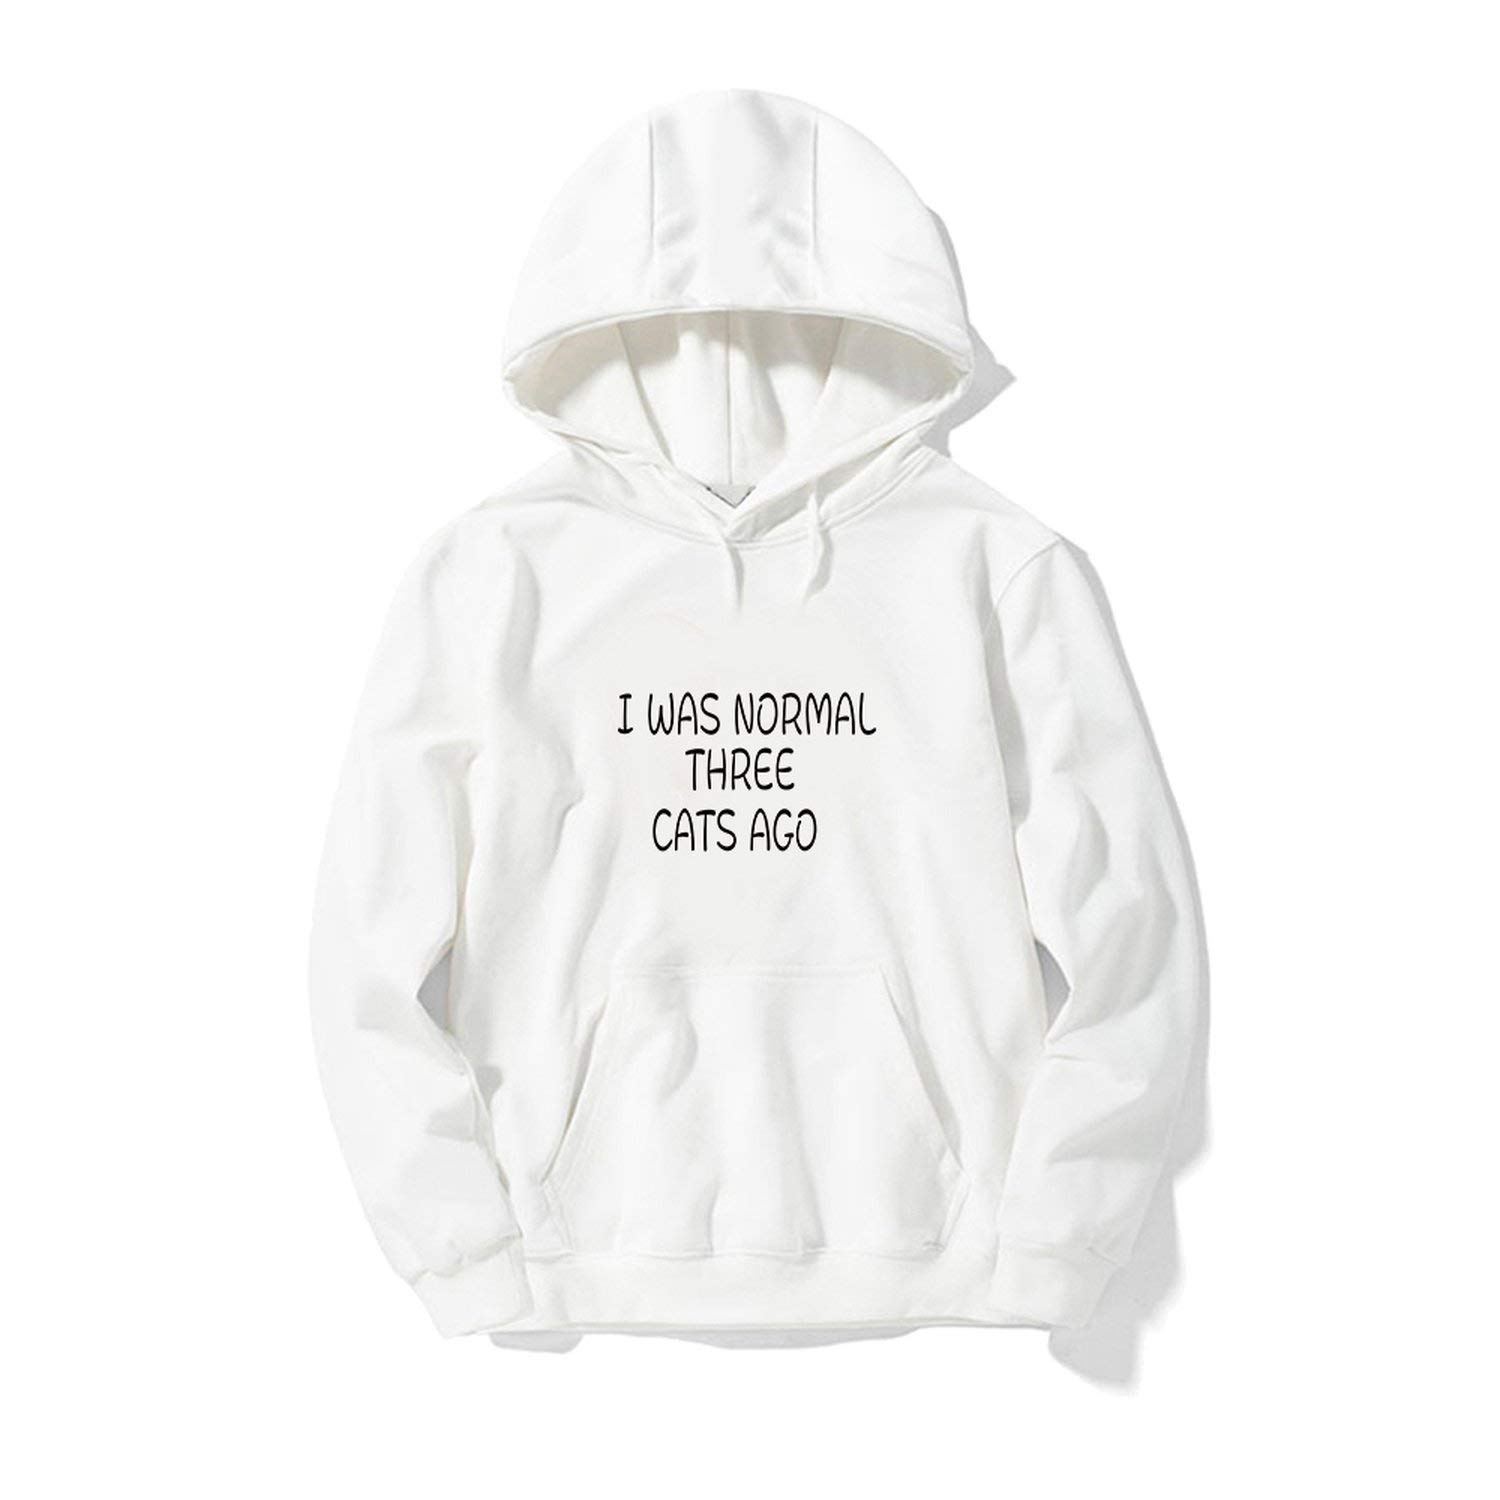 I was Normal Three Cats AGO Letters Printed Women Men Hip Hop Hoodies Funny Sweatshirts